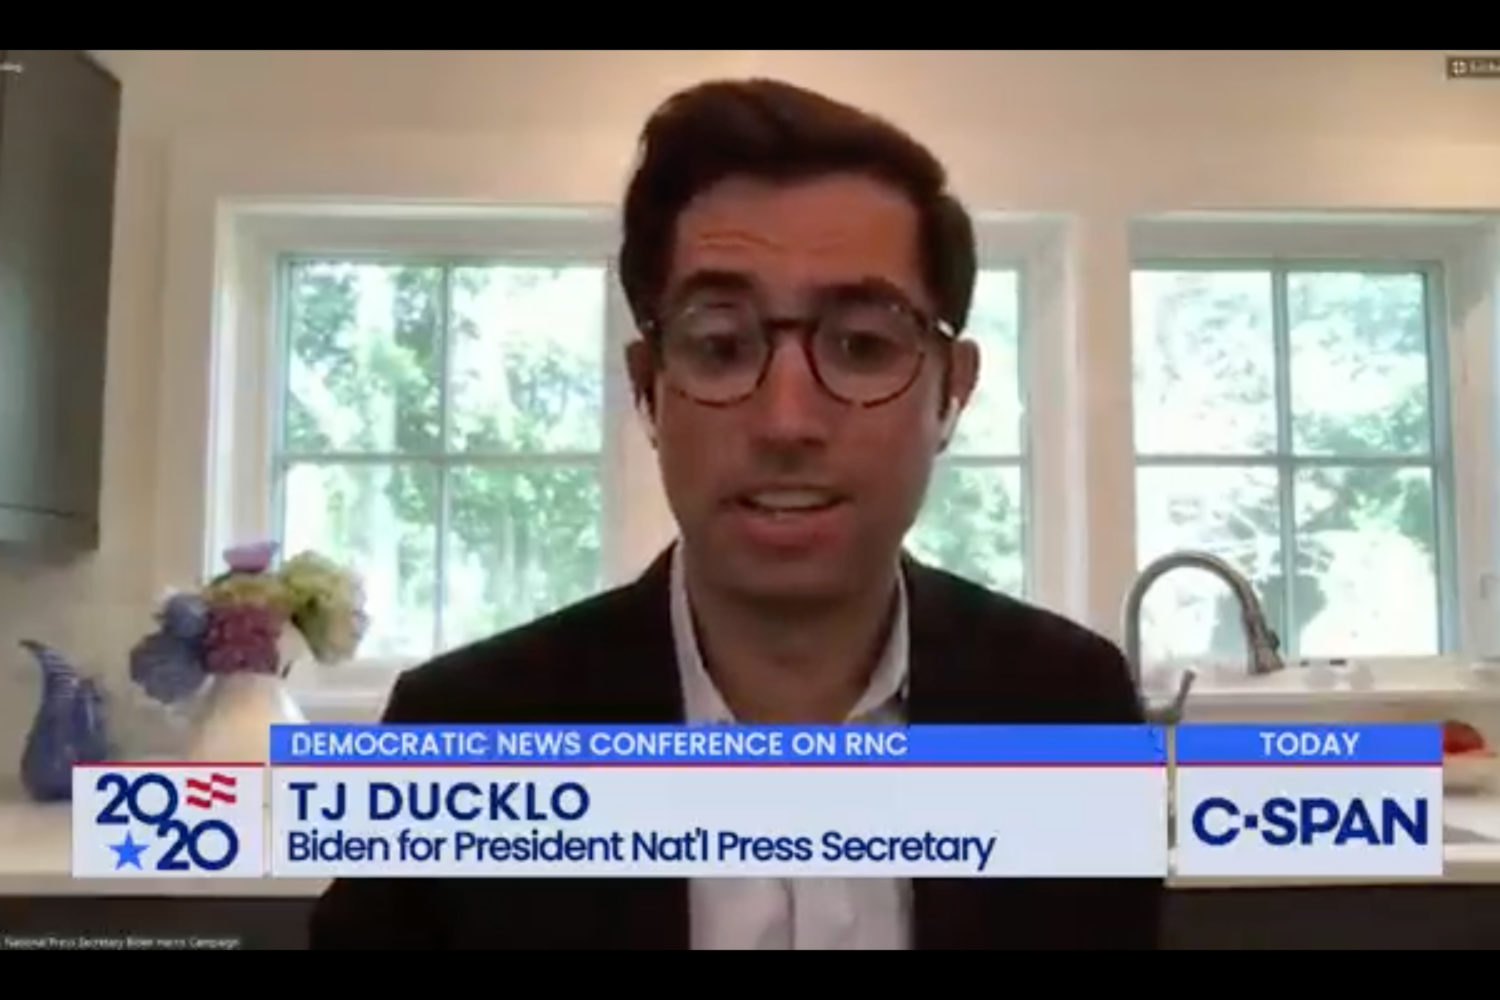 If Biden wins, Ducklo may join the White House press shop. Photograph by C-Span.